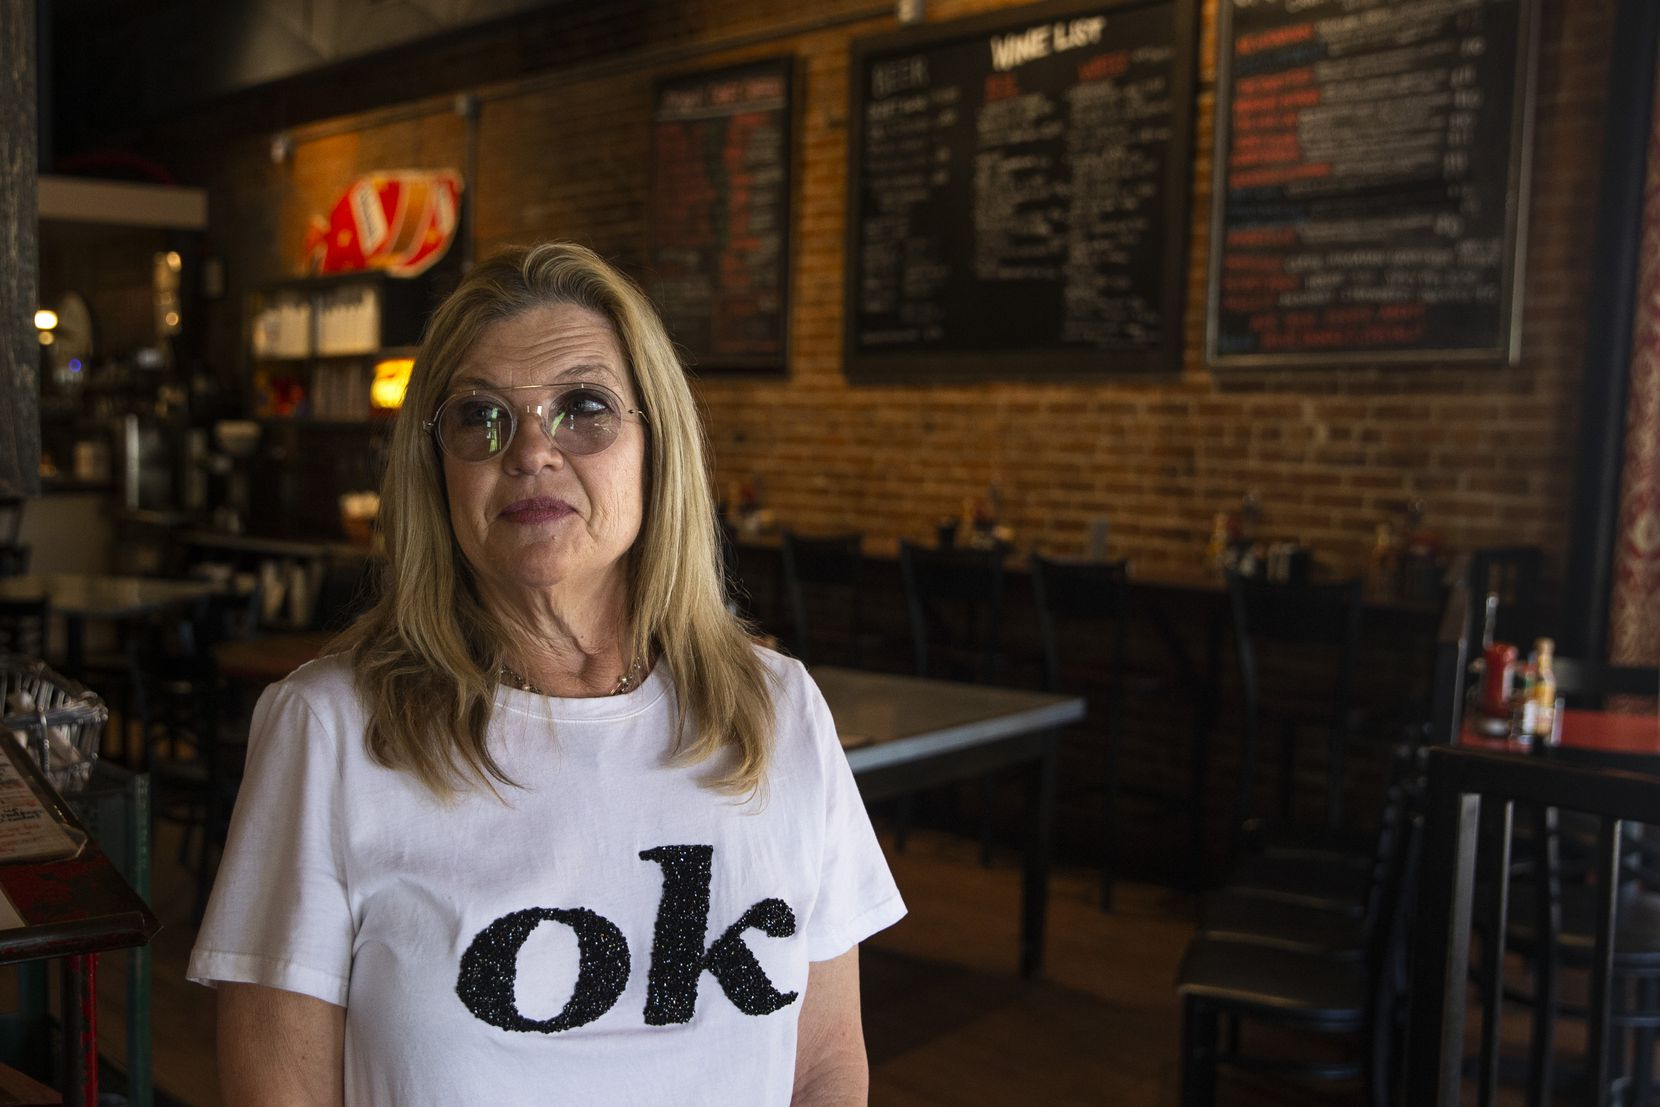 Spoons Cafe owner Karen Klassen said the pandemic has taken such a toll on business that she was often finding herself in tears at the end of the workday. Her T-shirt is a reminder to herself: Ultimately, she's trying to believe, things will be all right.